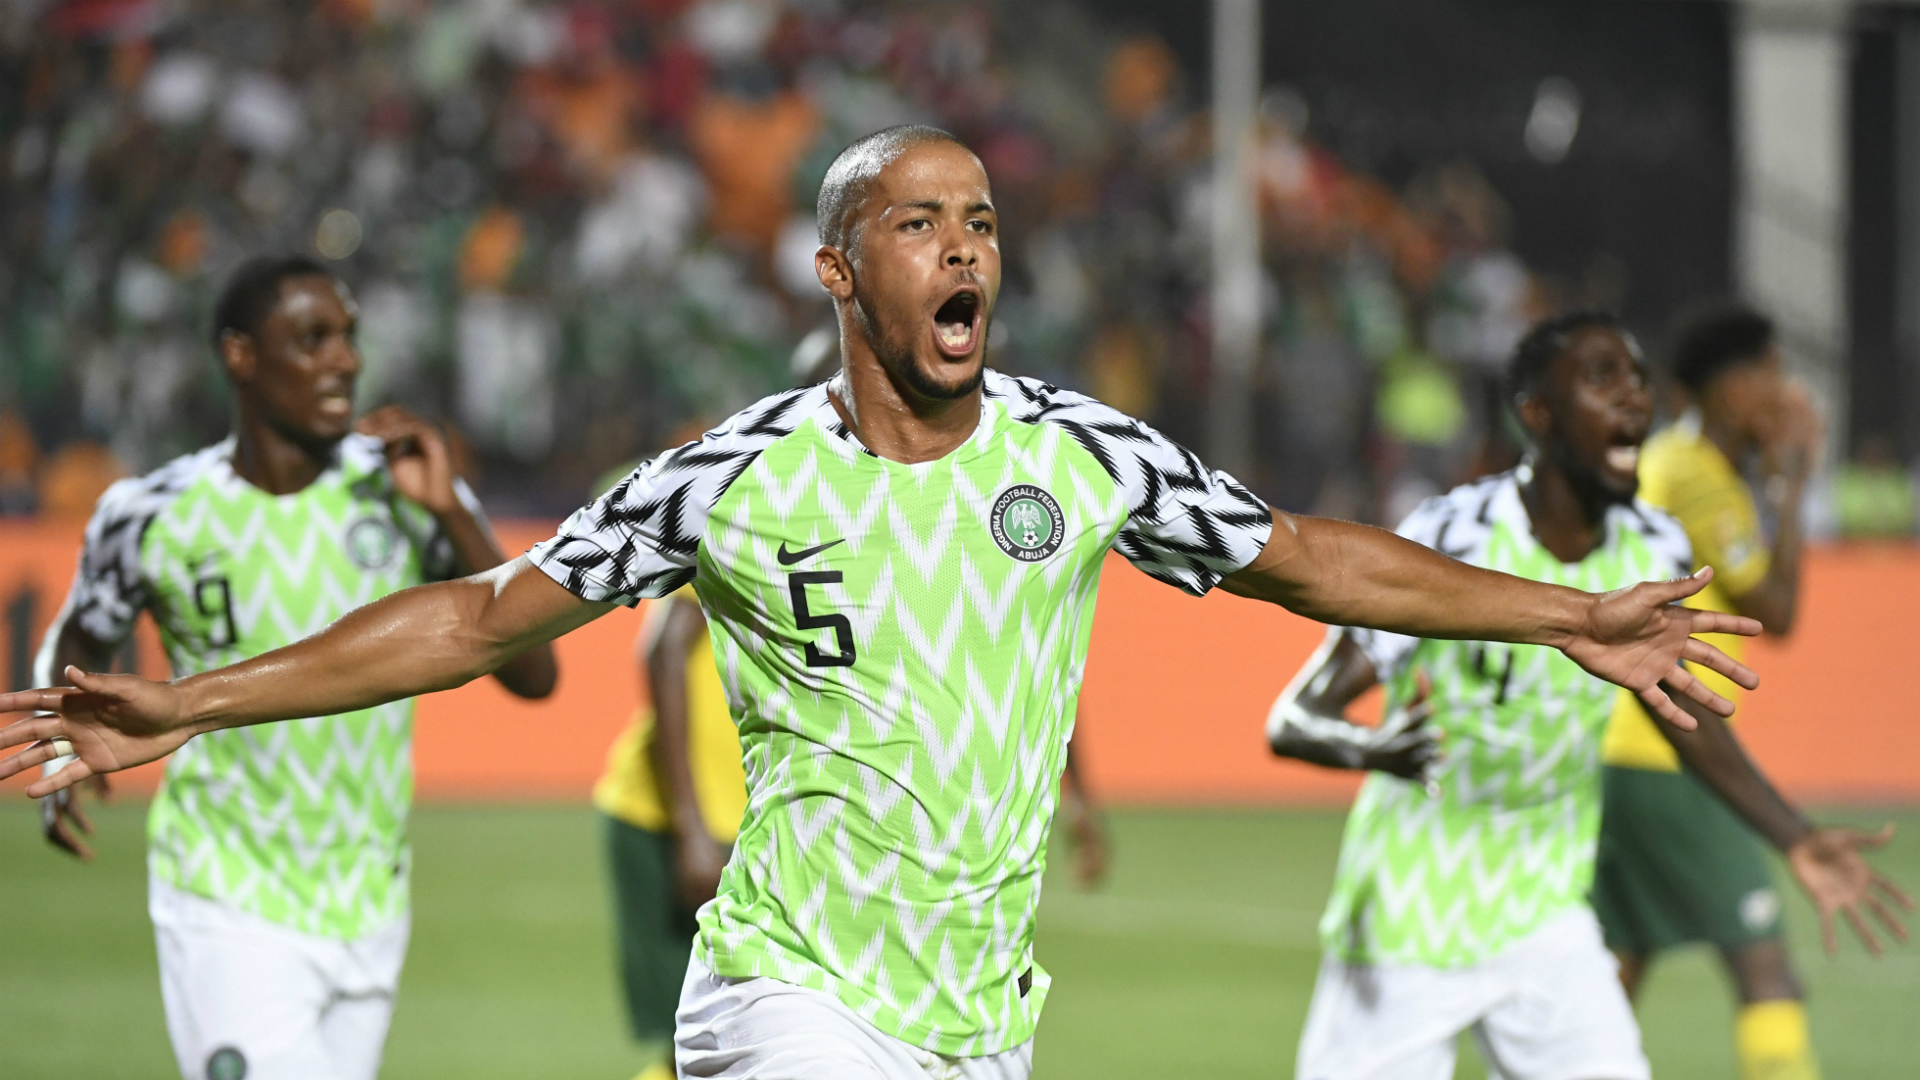 Afcon 2019: Nigeria coach Rohr goes for unchanged starting XI against Algeria